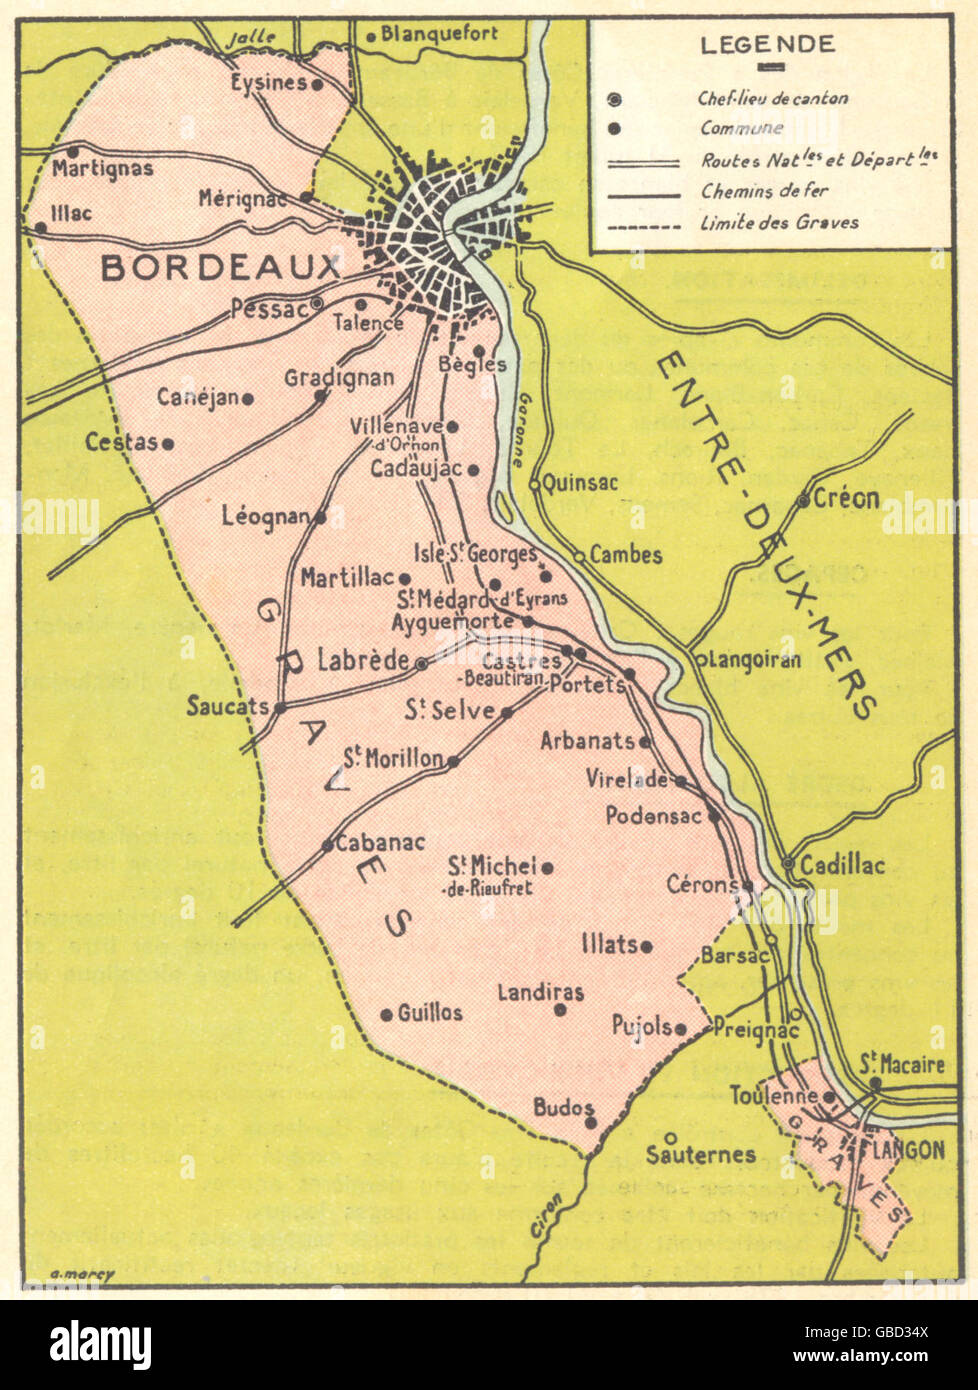 BORDEAUX WINE MAP Carte des Graves 1939 Stock Photo 110311290 Alamy